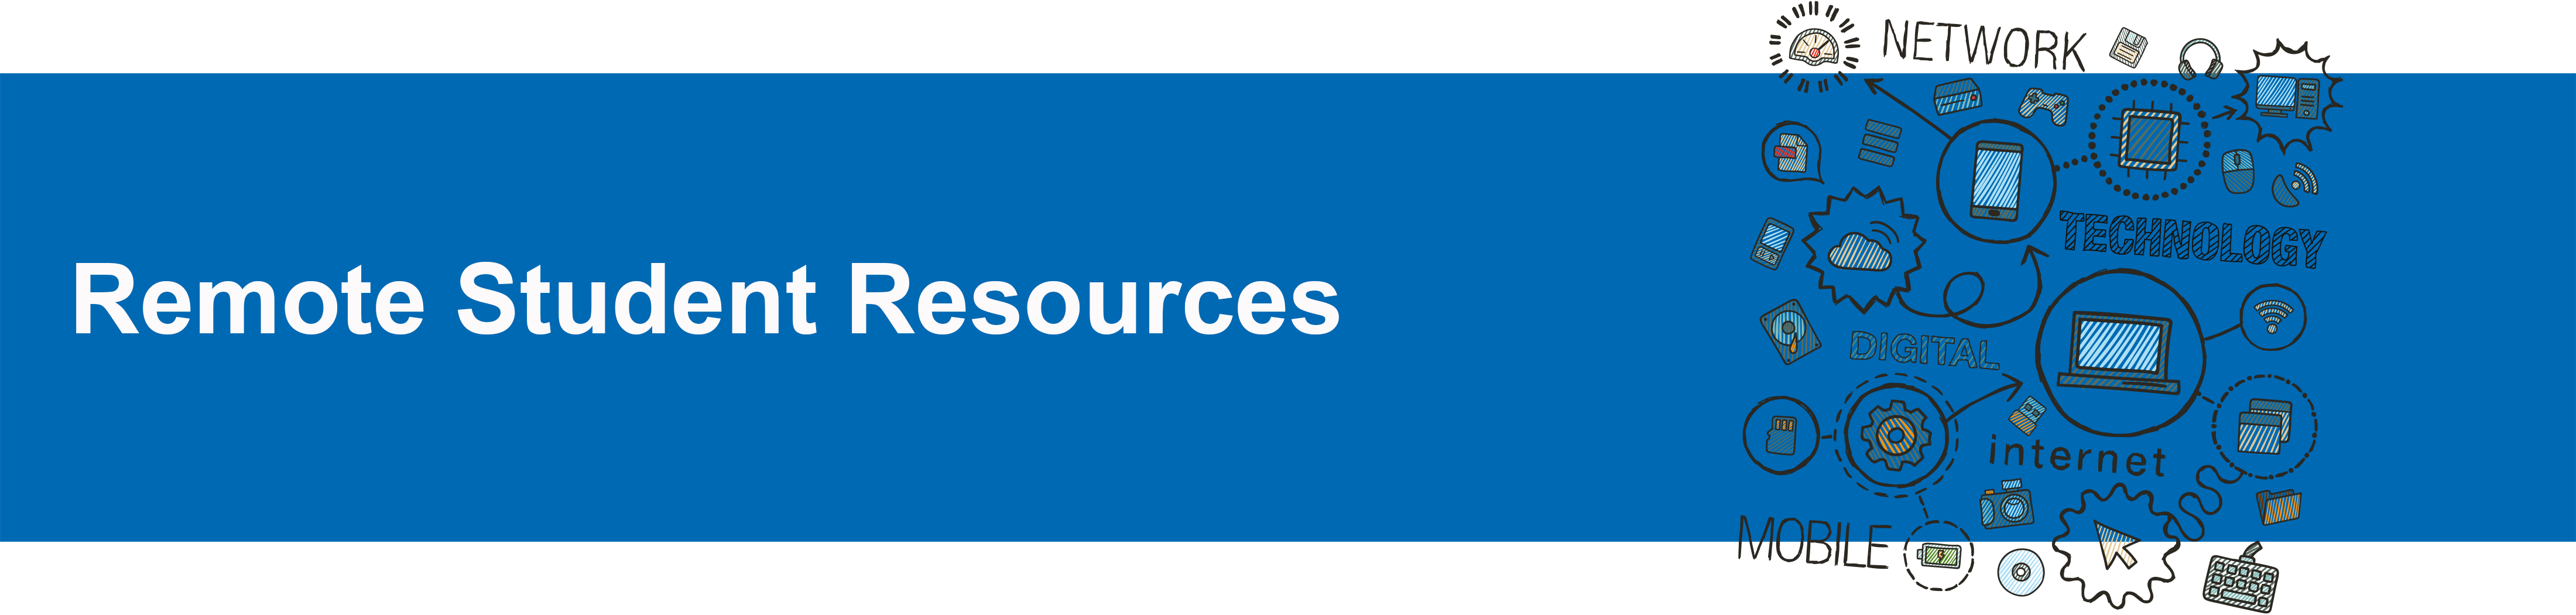 Remote Student Resources